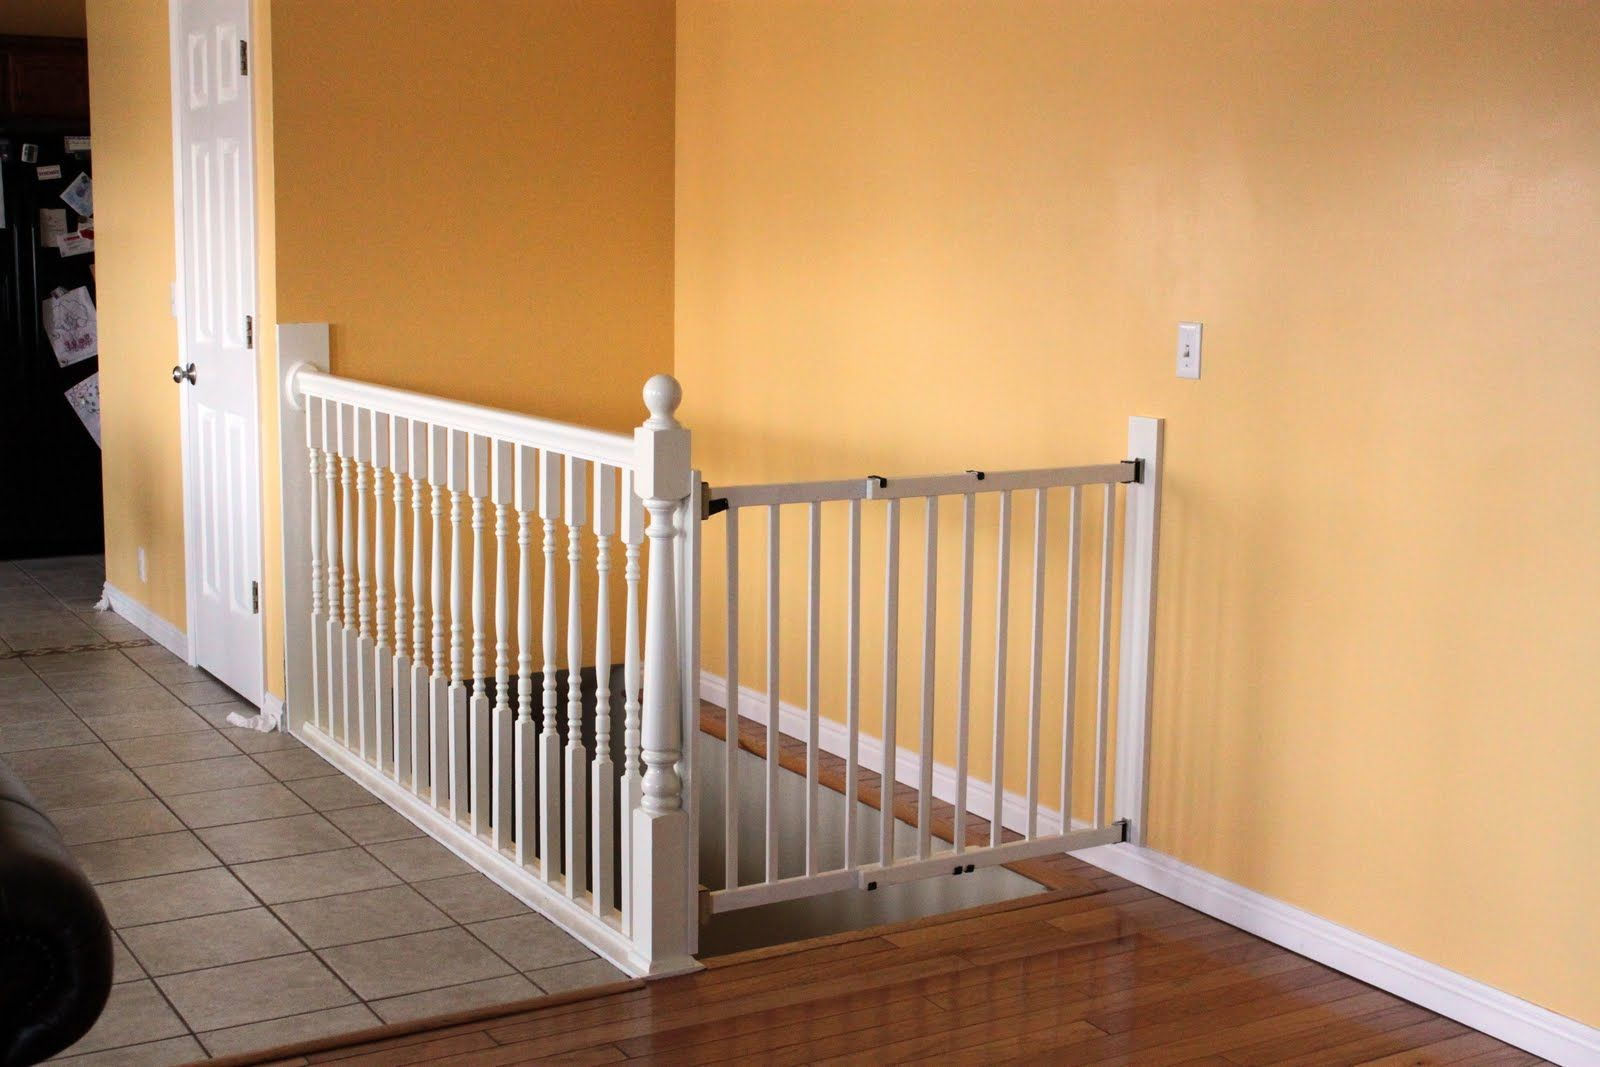 DIY White Baby Safety Gate For Stairs Design Ideas with